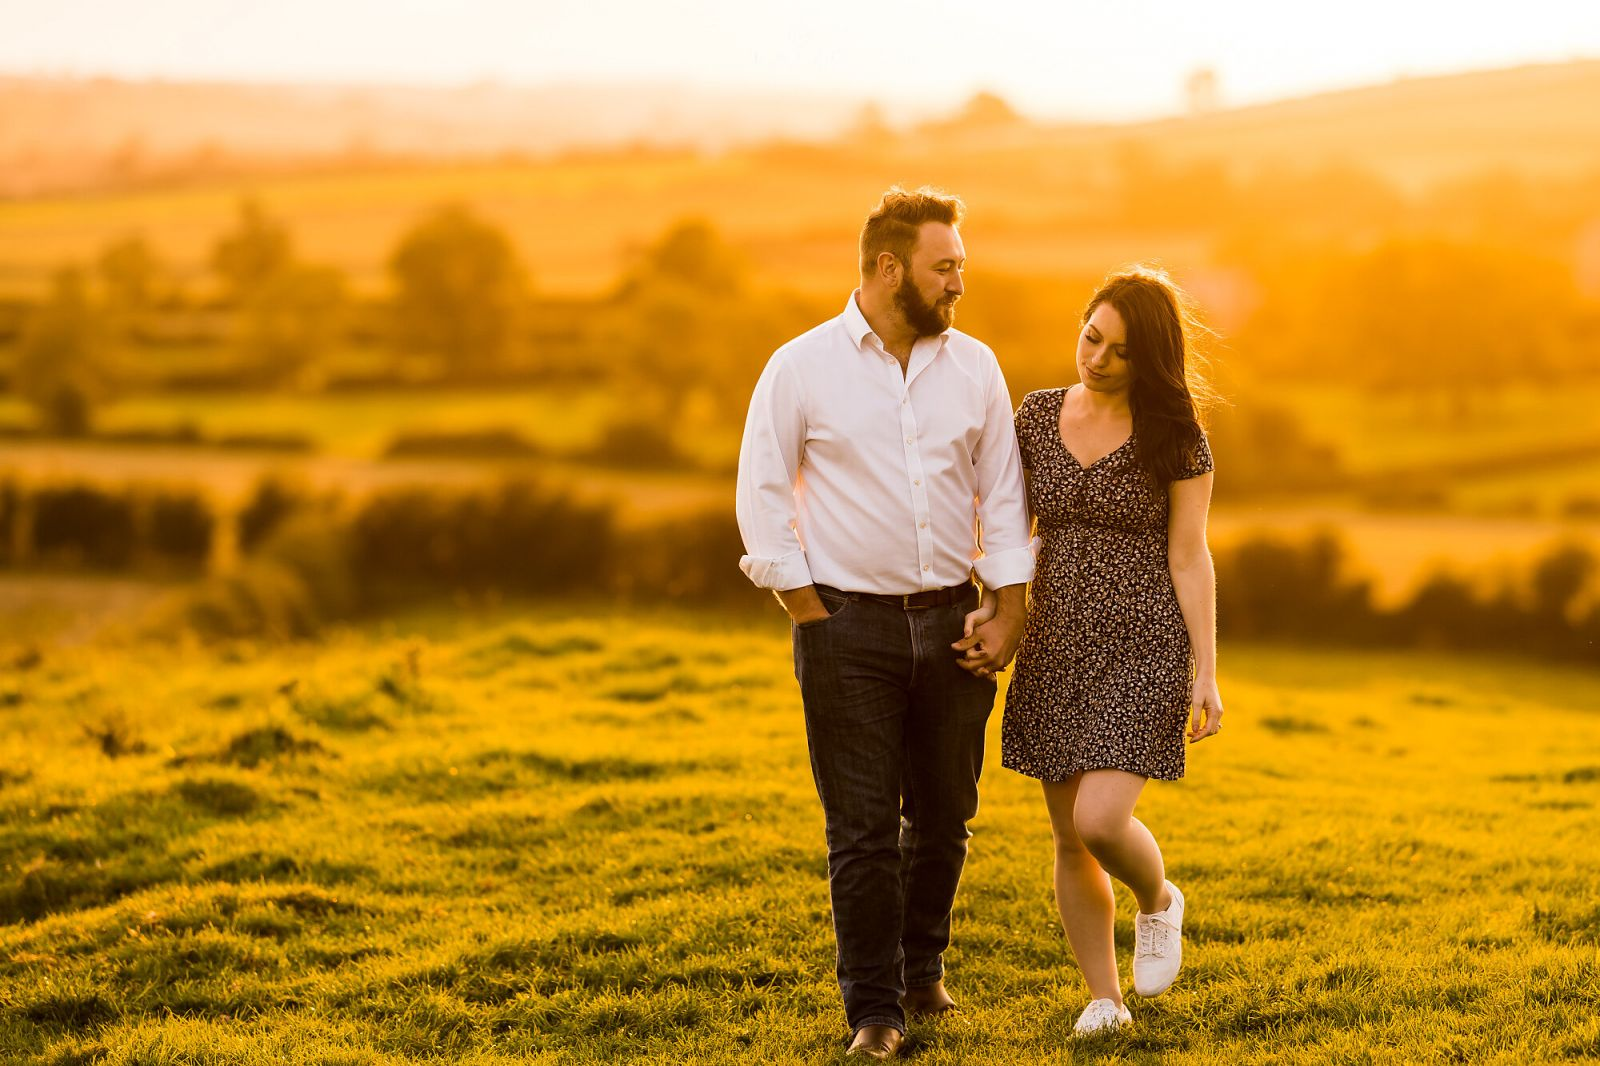 Hothorpe Hall and Woodlands pre-wedding photography